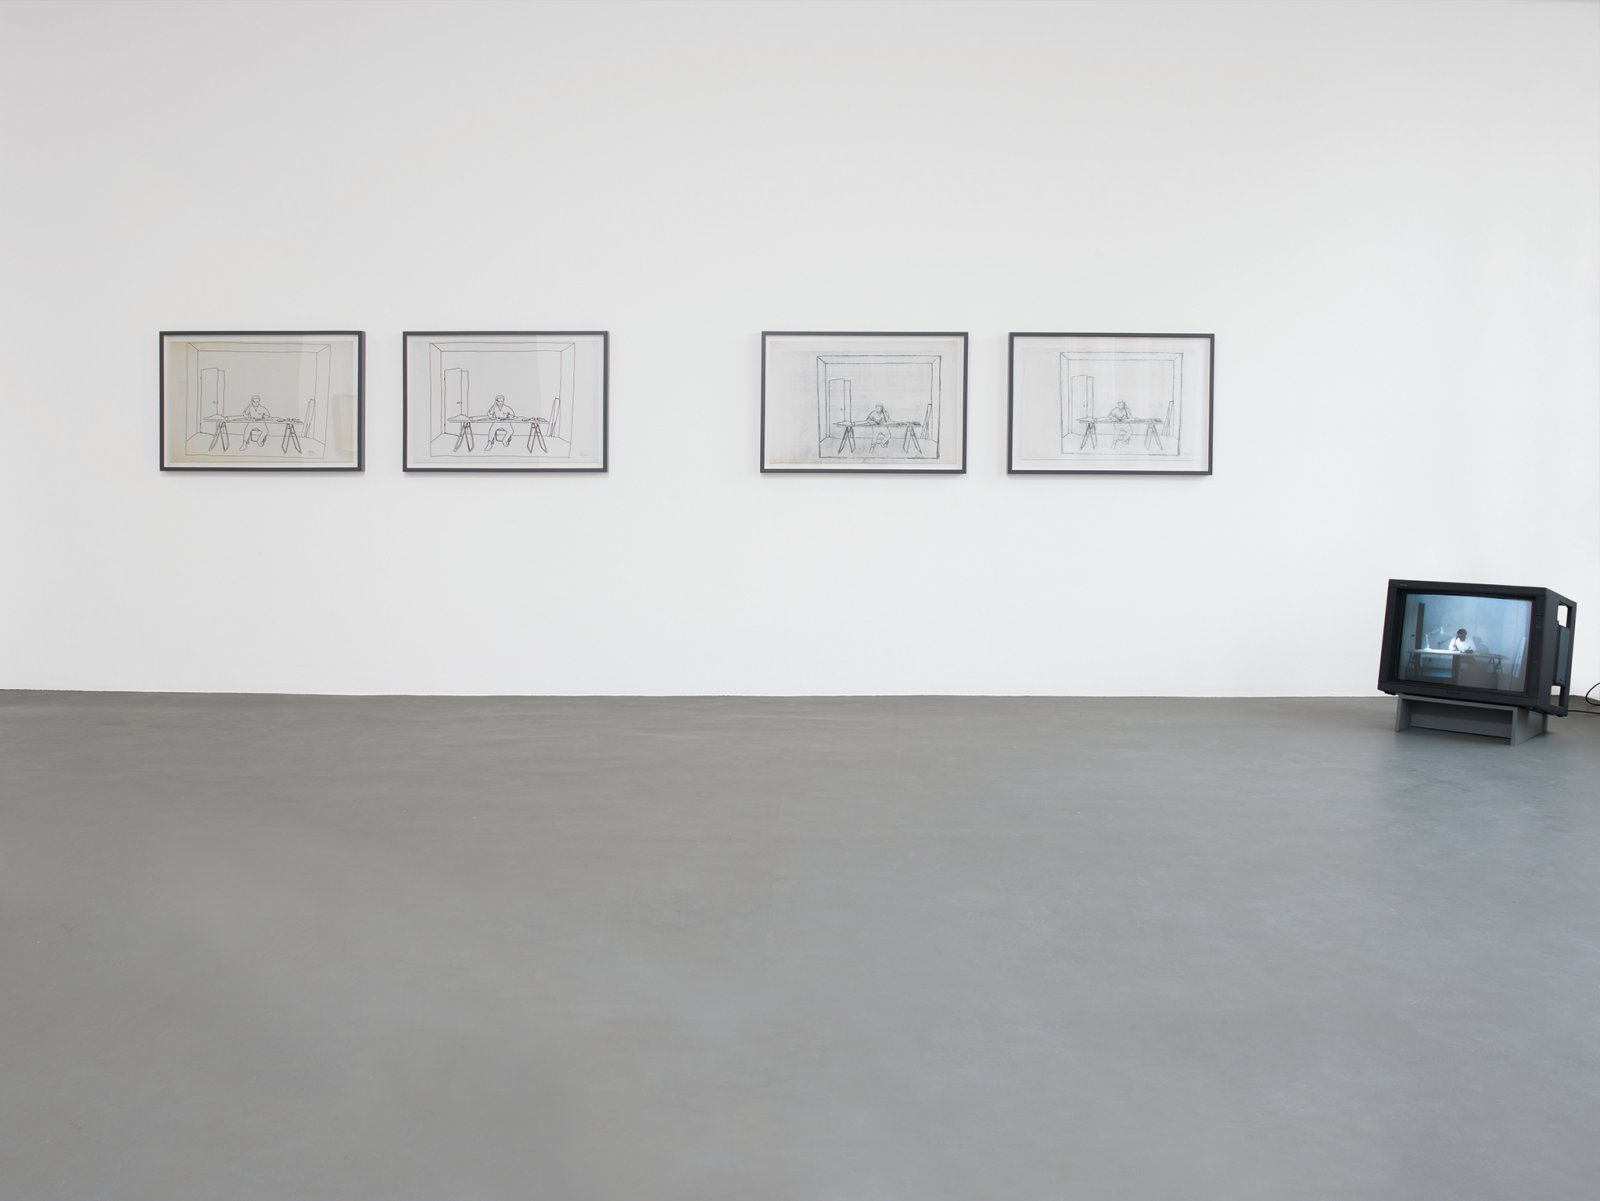 ​​​​​Ian Wallace, ​At Work 1983, 1983, installation, dimensions variable. Installation view, ​A Literature of Images​, Witte de With, Rotterdam, 2008​​​​​​​​ by Ian Wallace